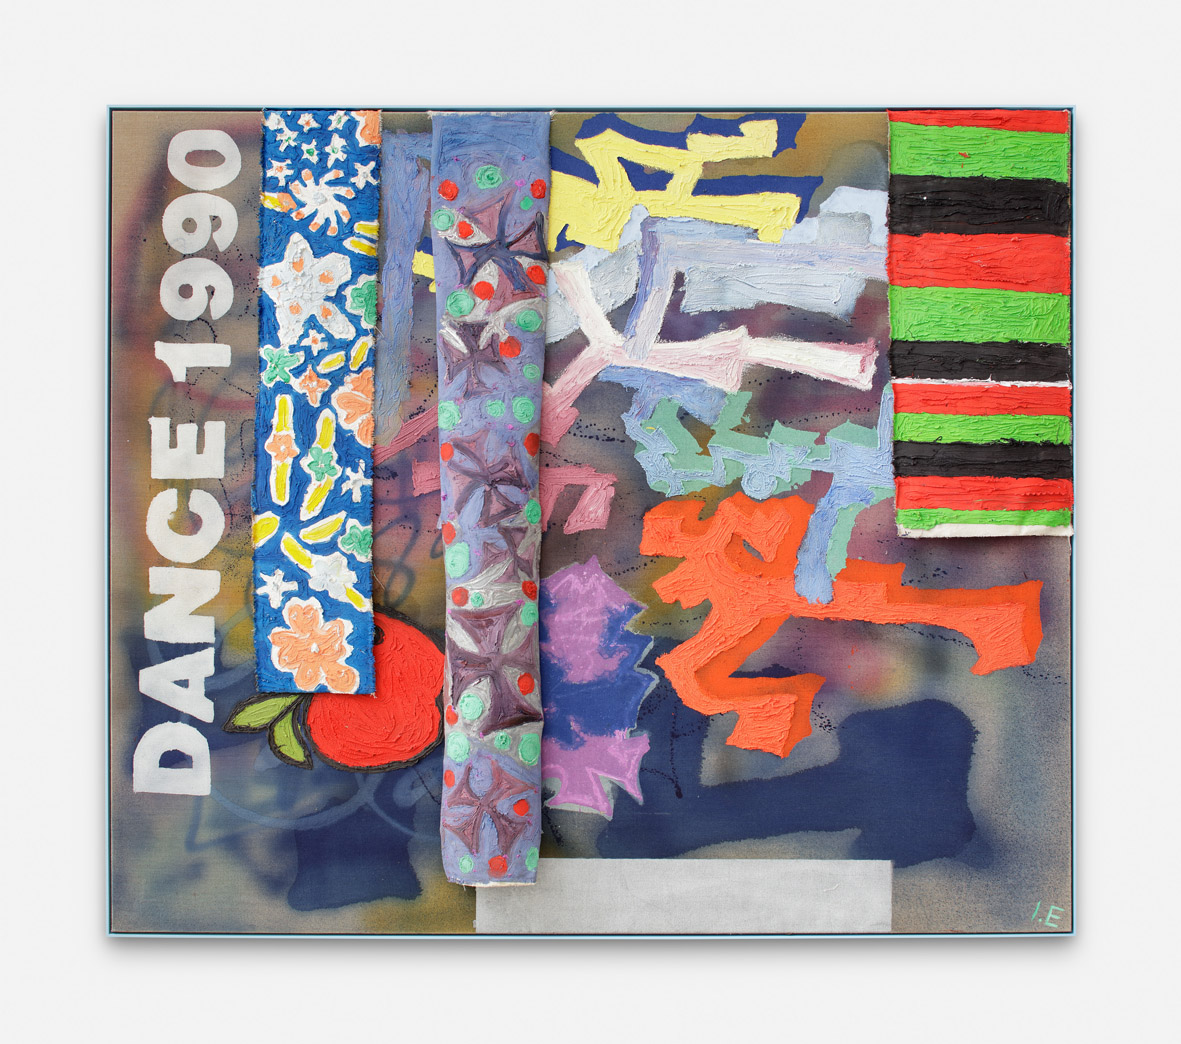 DANCE 1990  2017  Ink, acrylic puff and plastisol on cotton and linen  152.5 x 177.5 x 13 cm / 60 x 69.8 x 5.1 in